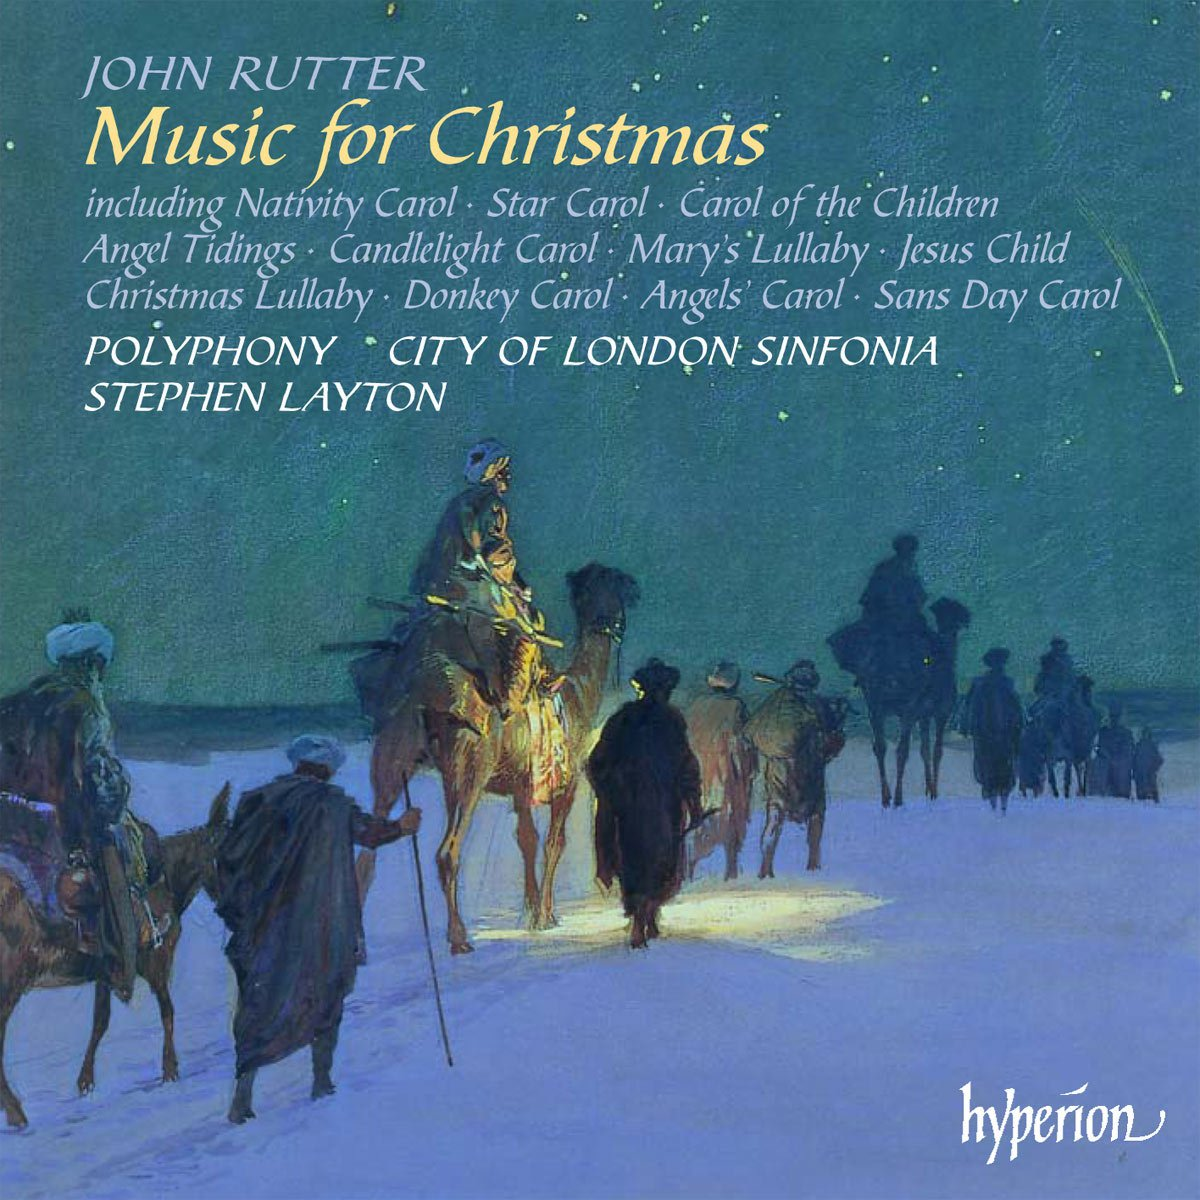 John Rutter: Music for Christmas: Amazon.co.uk: Music